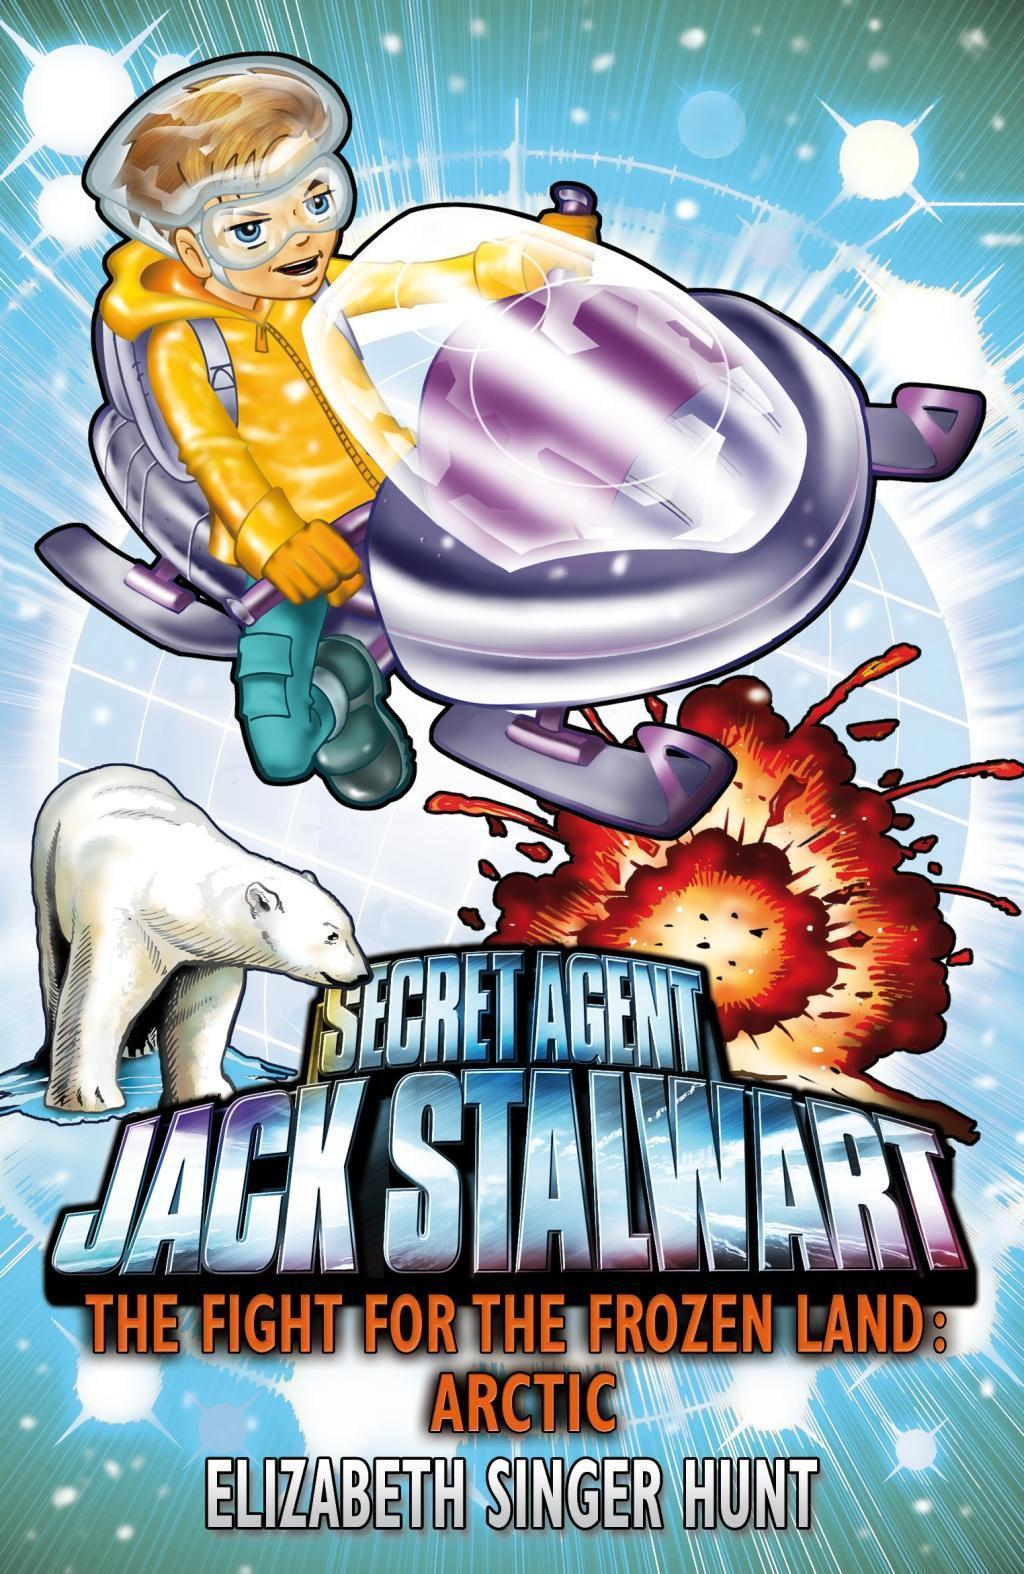 Jack Stalwart: The Fight for the Frozen Land